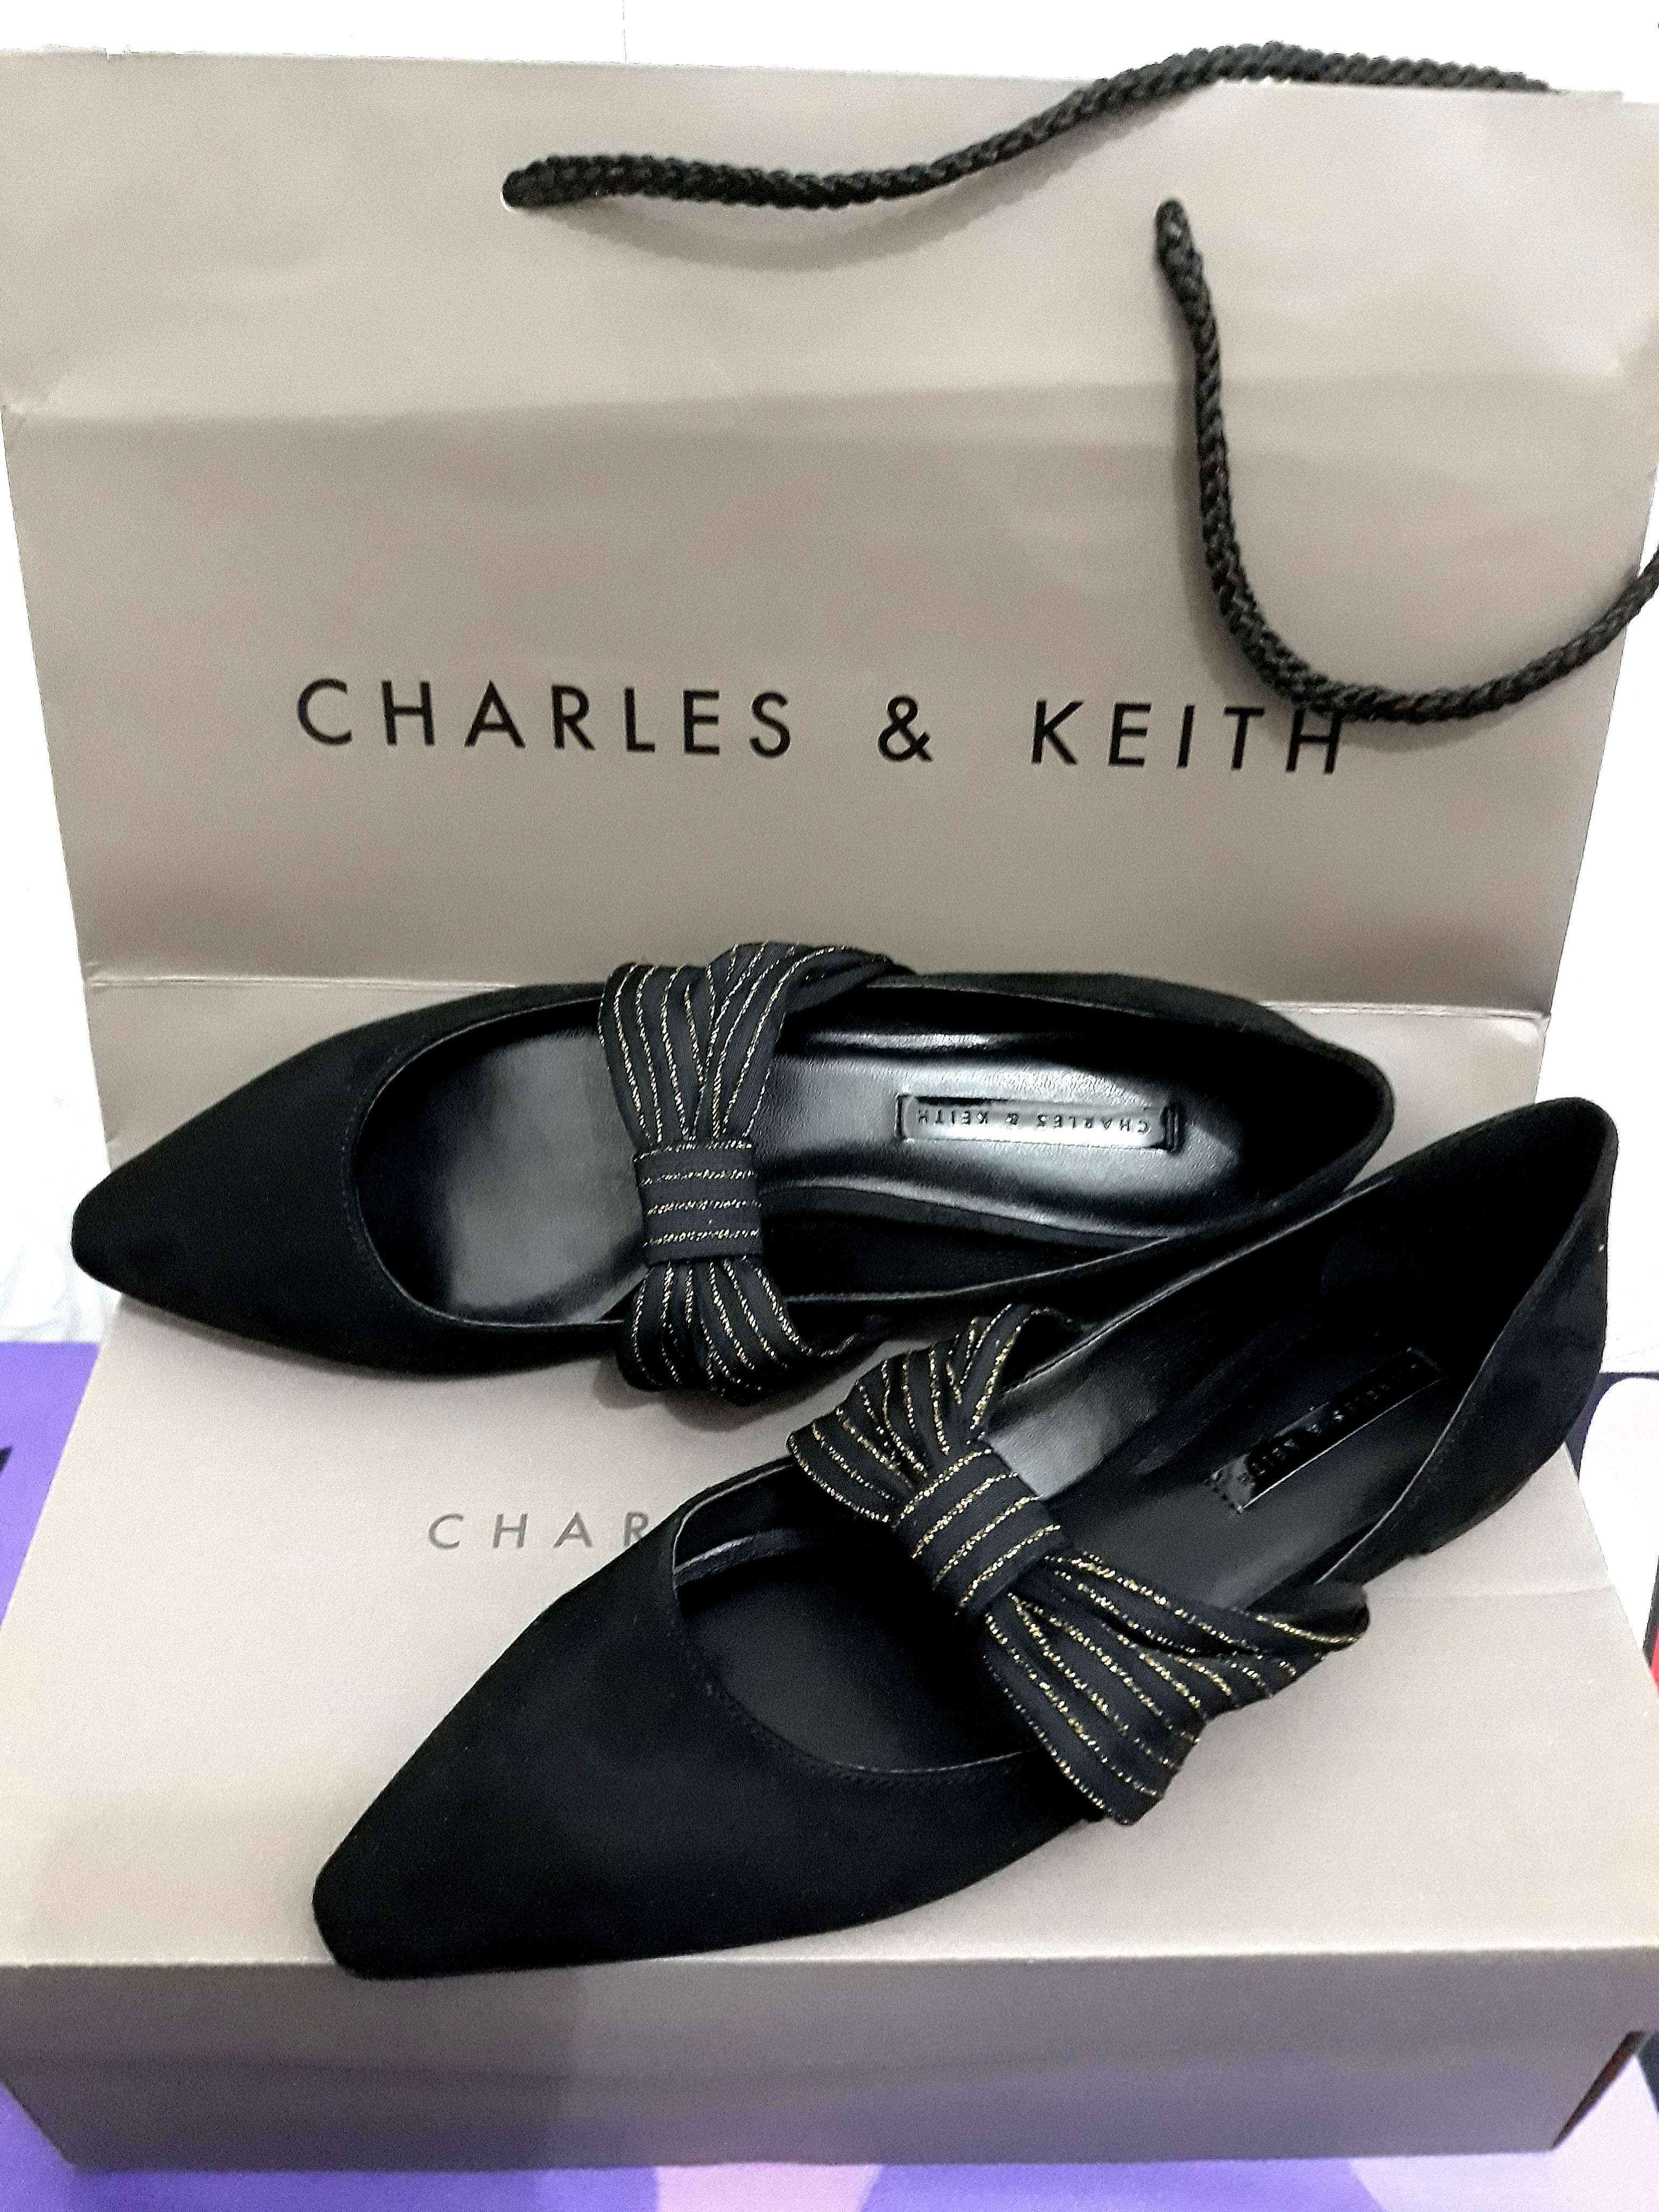 Charles&keith flat shoes